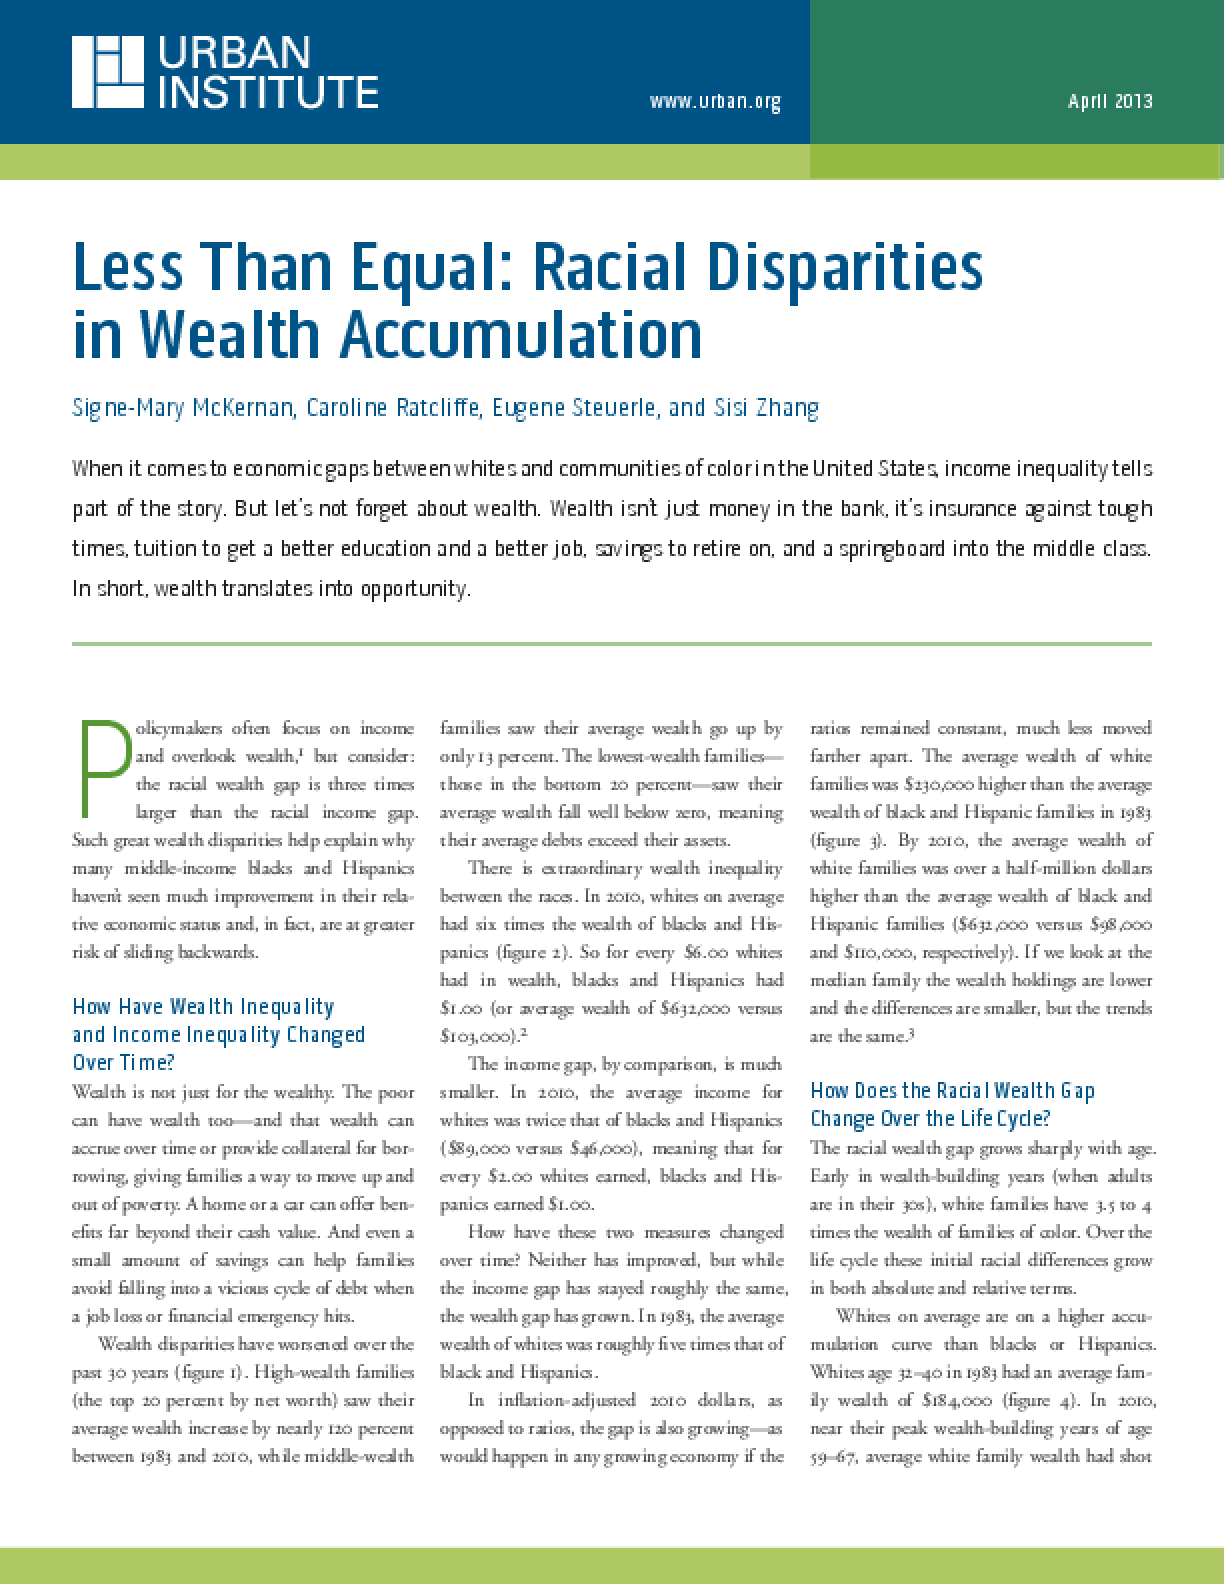 Less Than Equal: Racial Disparities in Wealth Accumulation